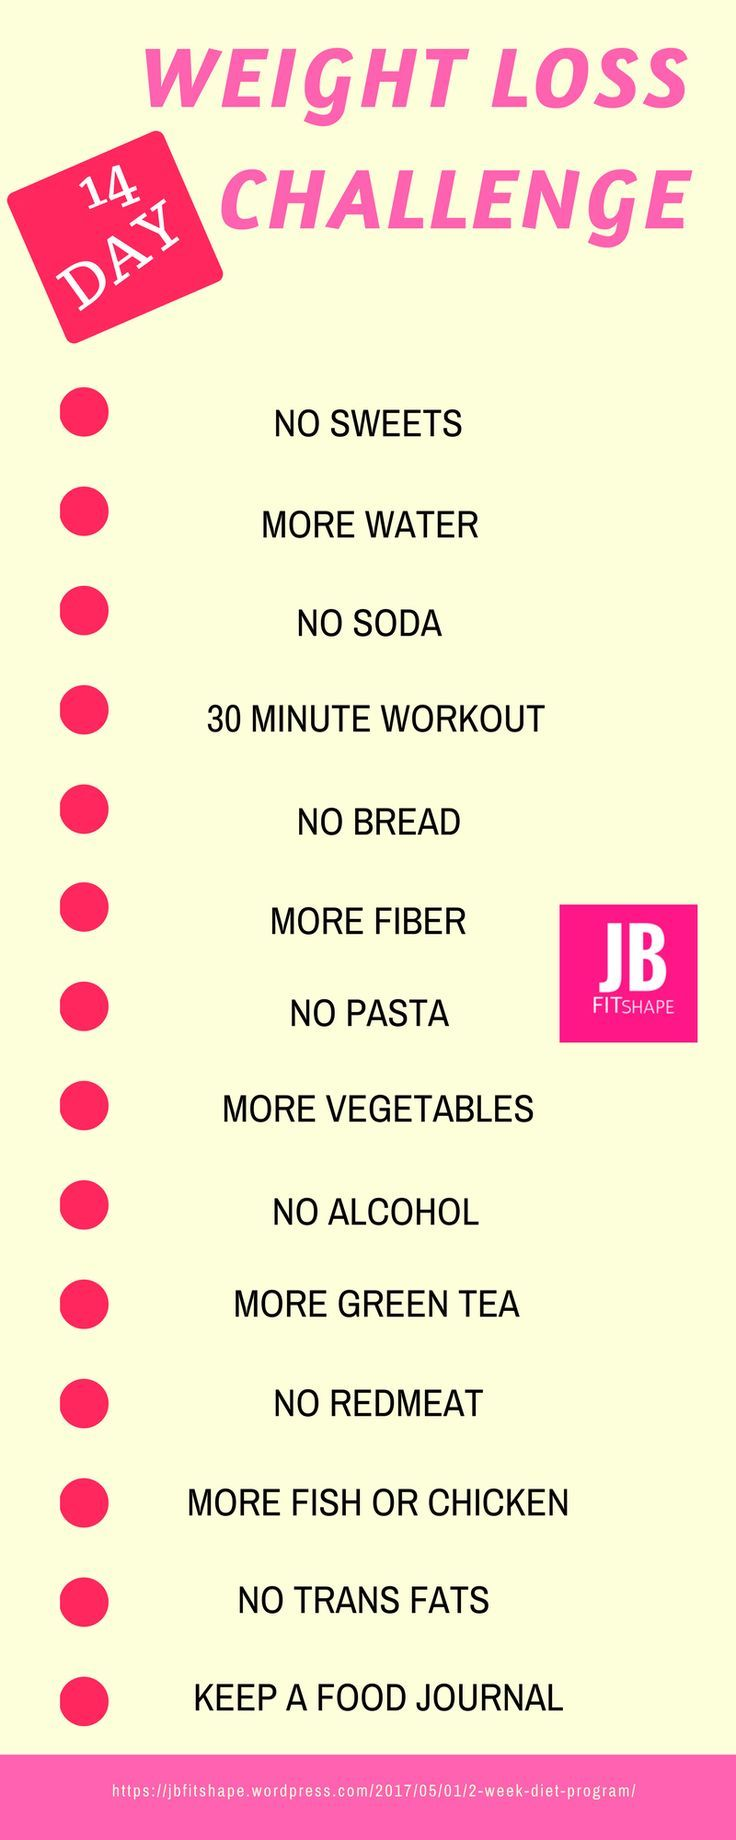 Weight loss challenge diet fitness weight loss https the 3 week diet is a revolutionary new diet system that not only guarantees to help you lose weight it promises to help you lose more weight all body fat nvjuhfo Gallery